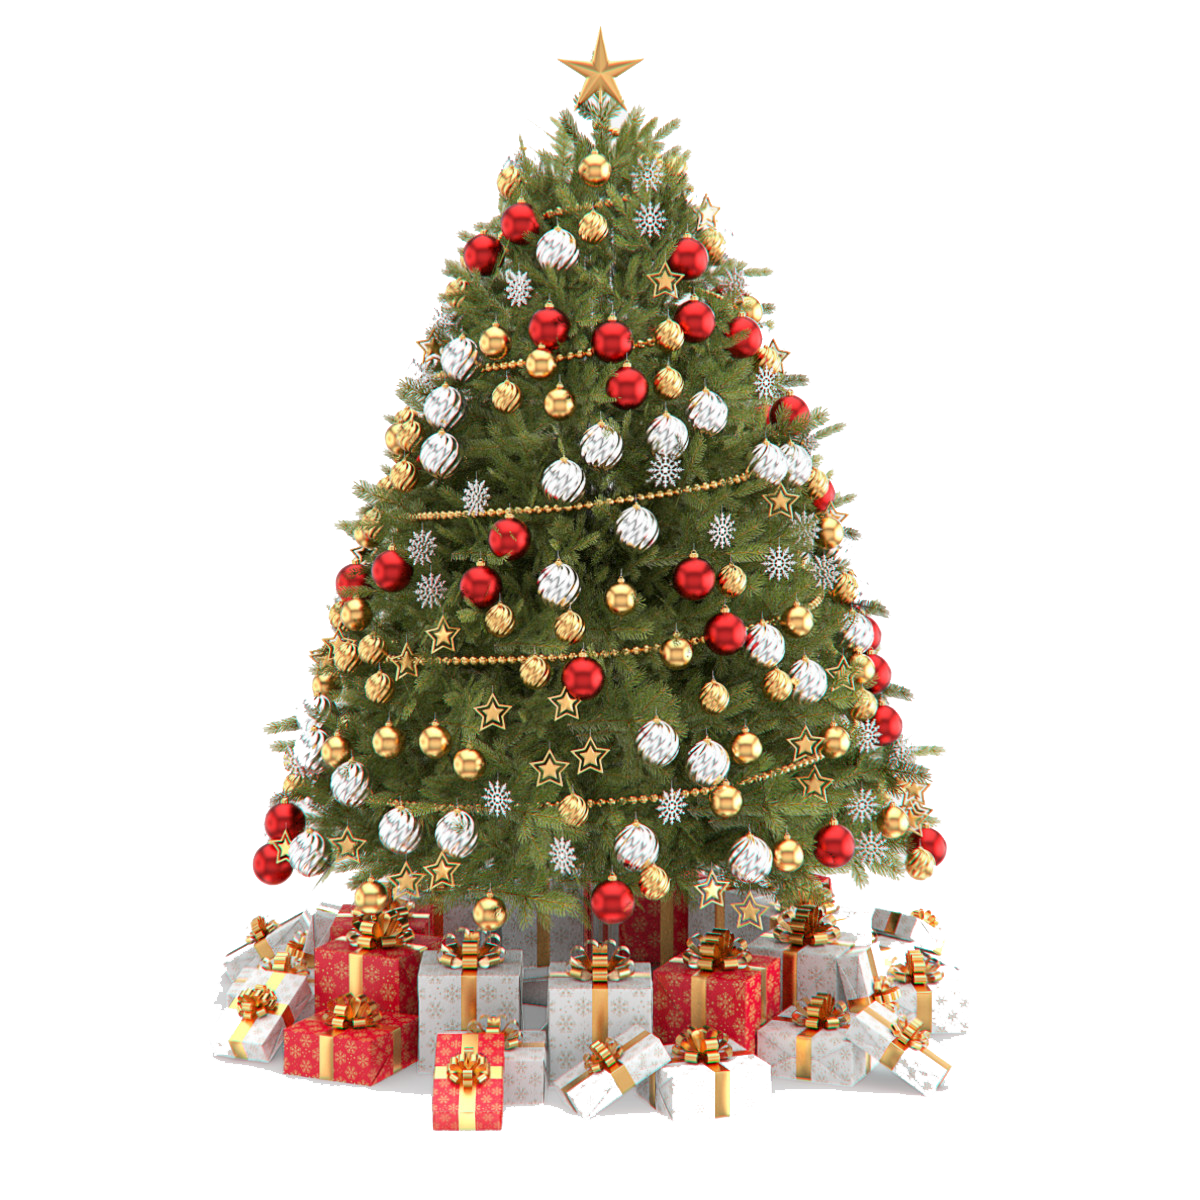 Christmas tree light clipart clip library download Christmas Tree PNG Clipart | PNG Mart clip library download